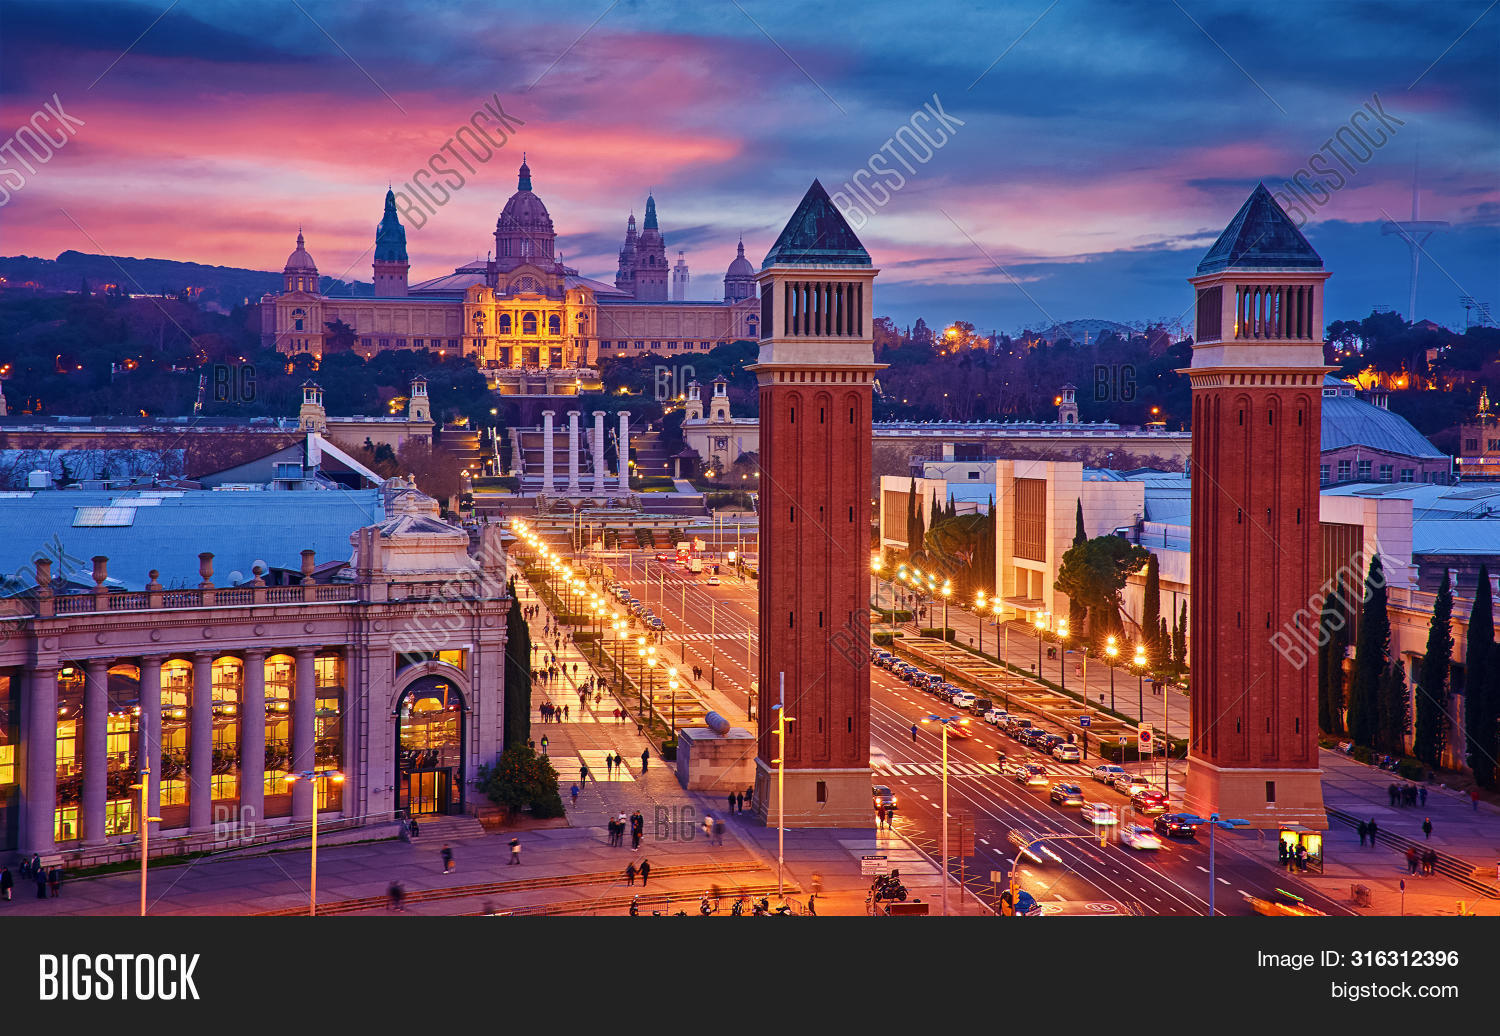 aerial,architecture,art,art museum,barcelona,beautiful,building,catalan,catalonia,catalonian,city,cityscape,culture,dusk,europe,european union,evening,landmark,landscape,location,mediterranean,megalopolis,metropolis,montjuic,museum,night,nightlife,nighttime,palace,panorama,romantic,royal,scene,skyline,spain,spanish,spanish square,square,square of spain,street,summer,sunset,top,top view,tourist,tower,town,traffic,travel,urban